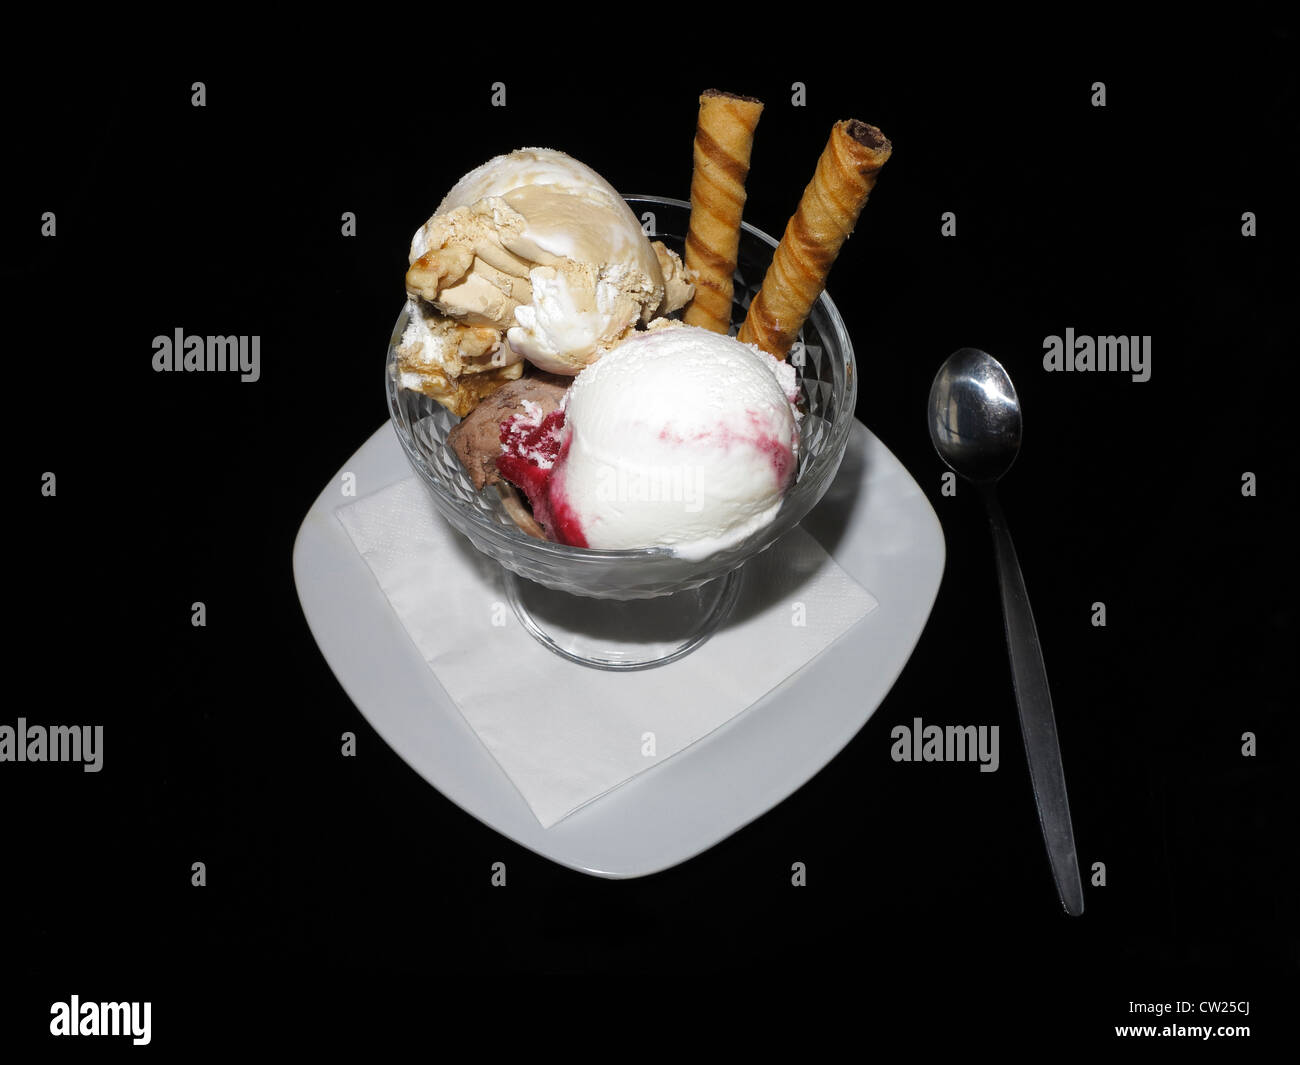 ice-cream-dessert-CW25CJ.jpg